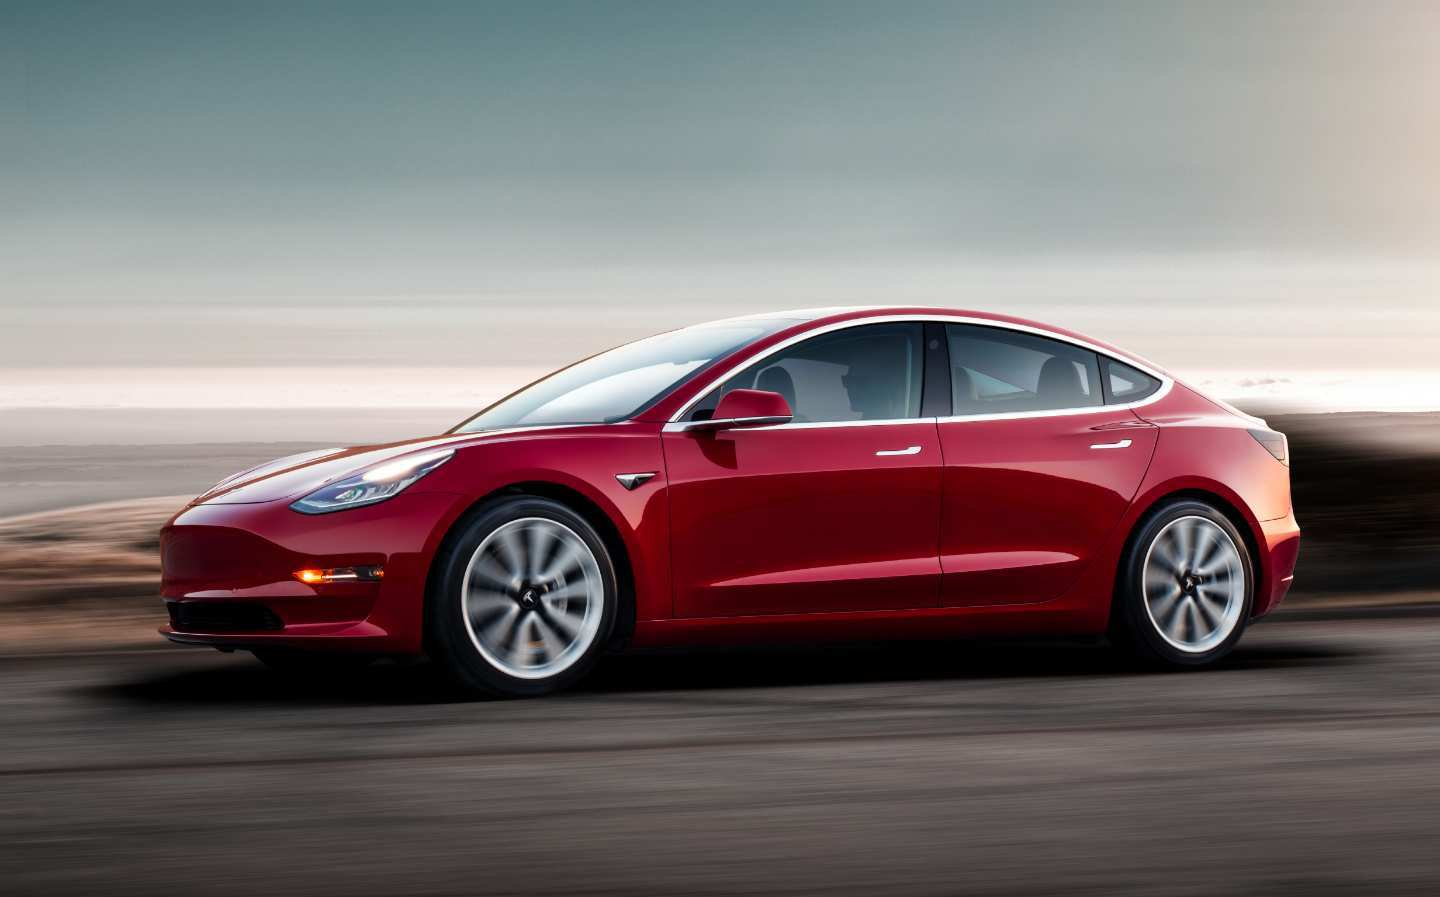 56 A 2019 Tesla Model 3 Review And Release Date